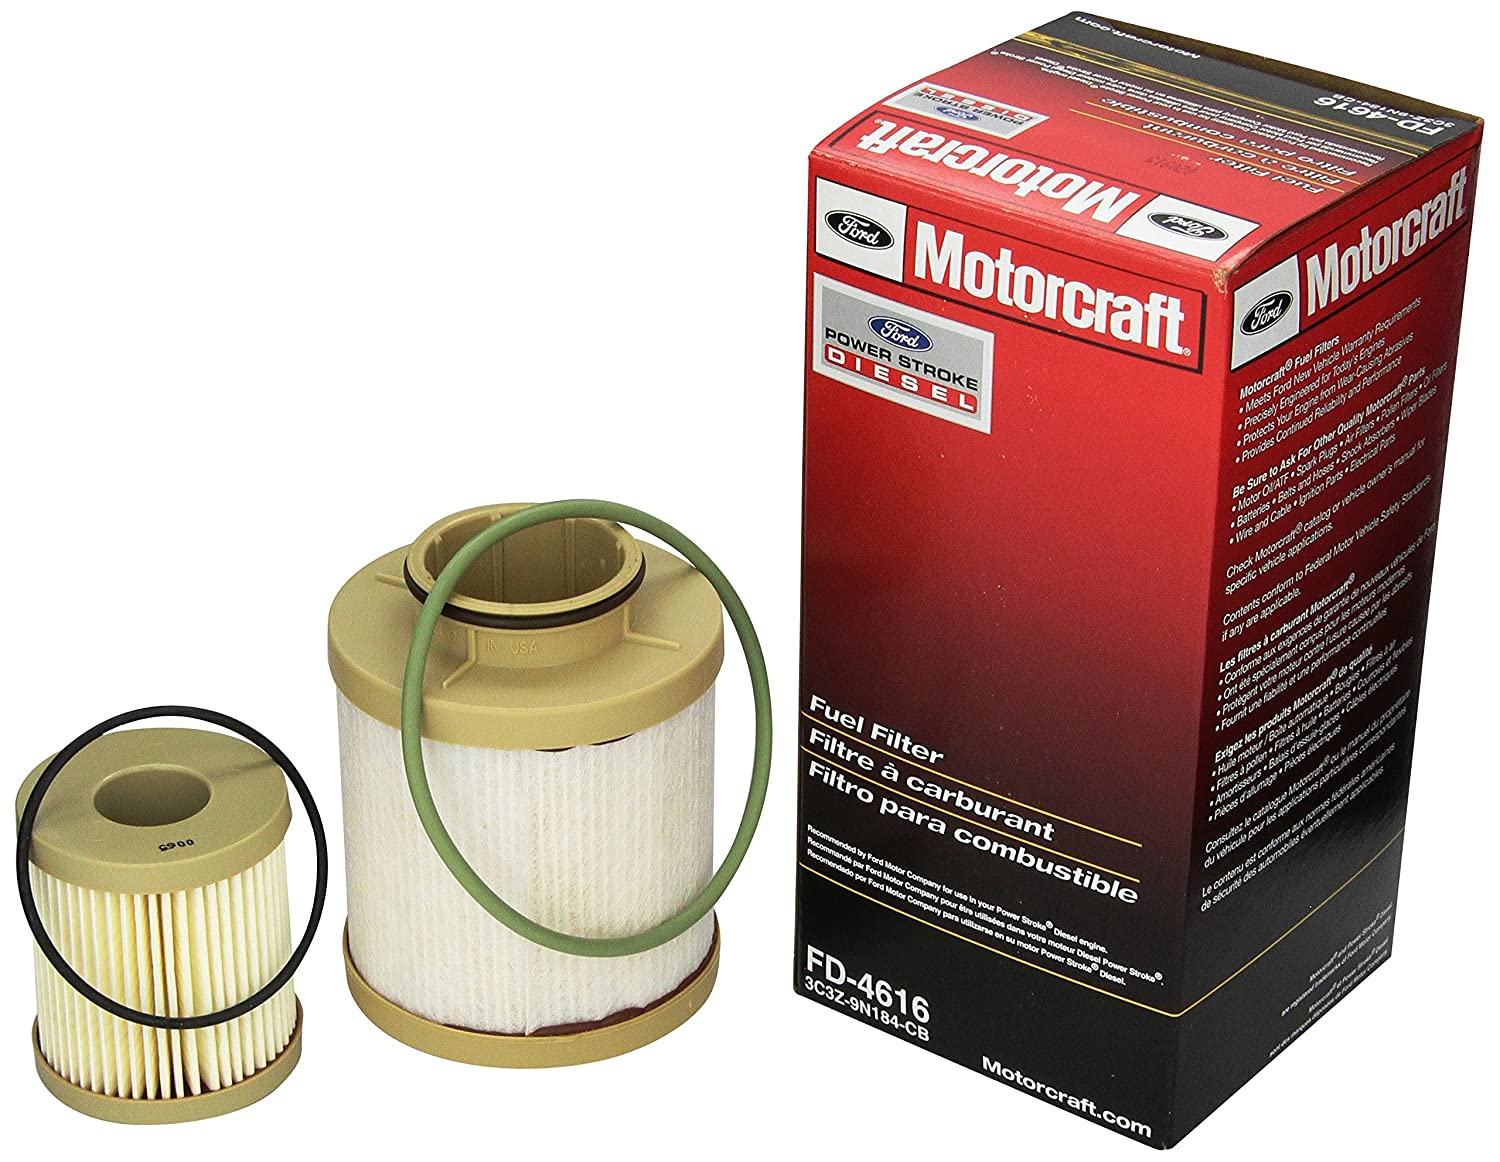 Fuel Filters Replacement Parts Automotive 92 Toyota Camry Filter Location Motorcraft Fd 4616